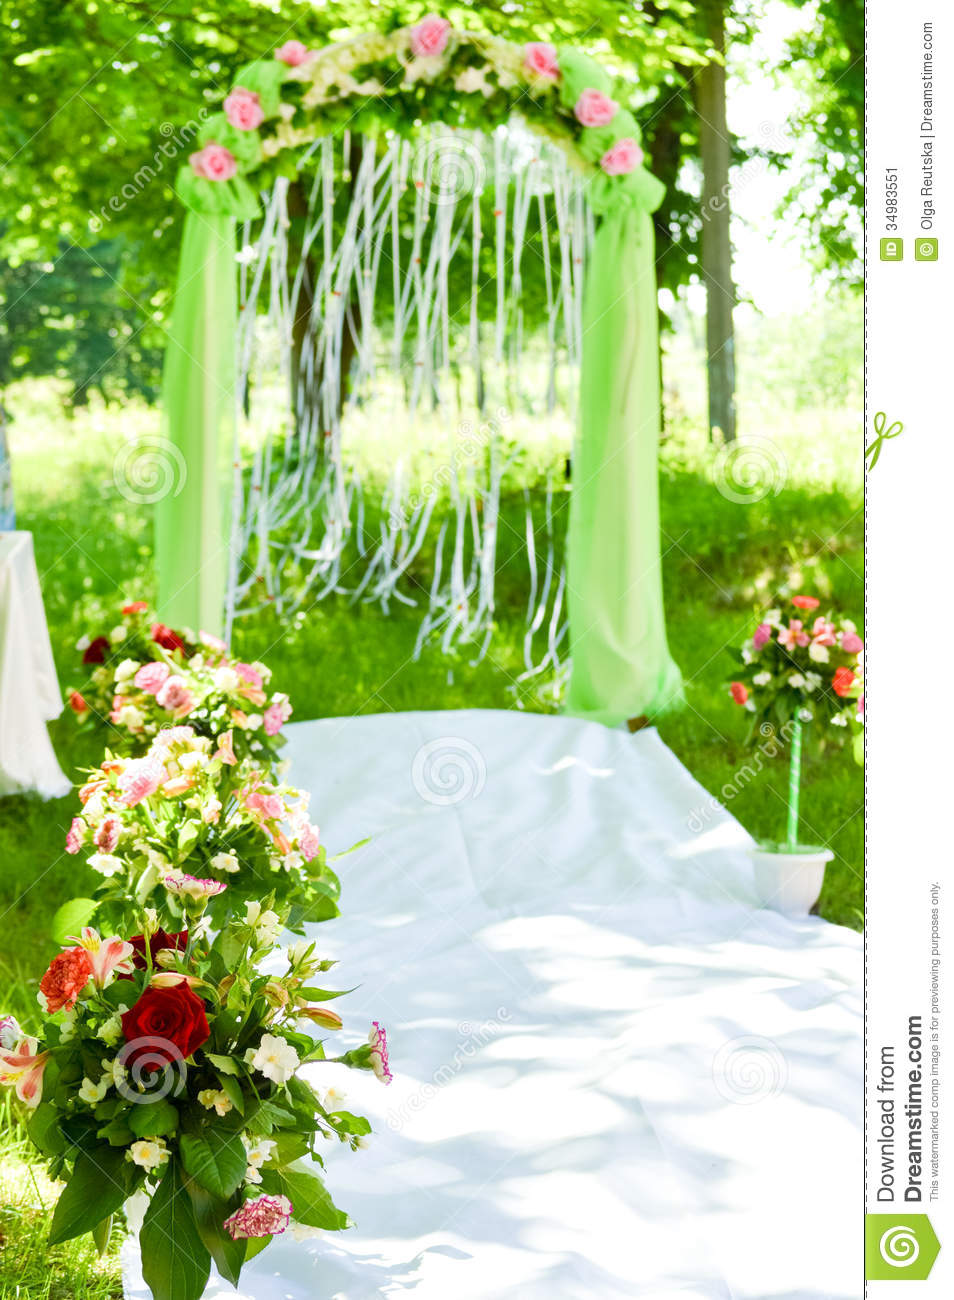 Wedding ceremony arch decoration stock image image of nature love wedding ceremony arch decoration junglespirit